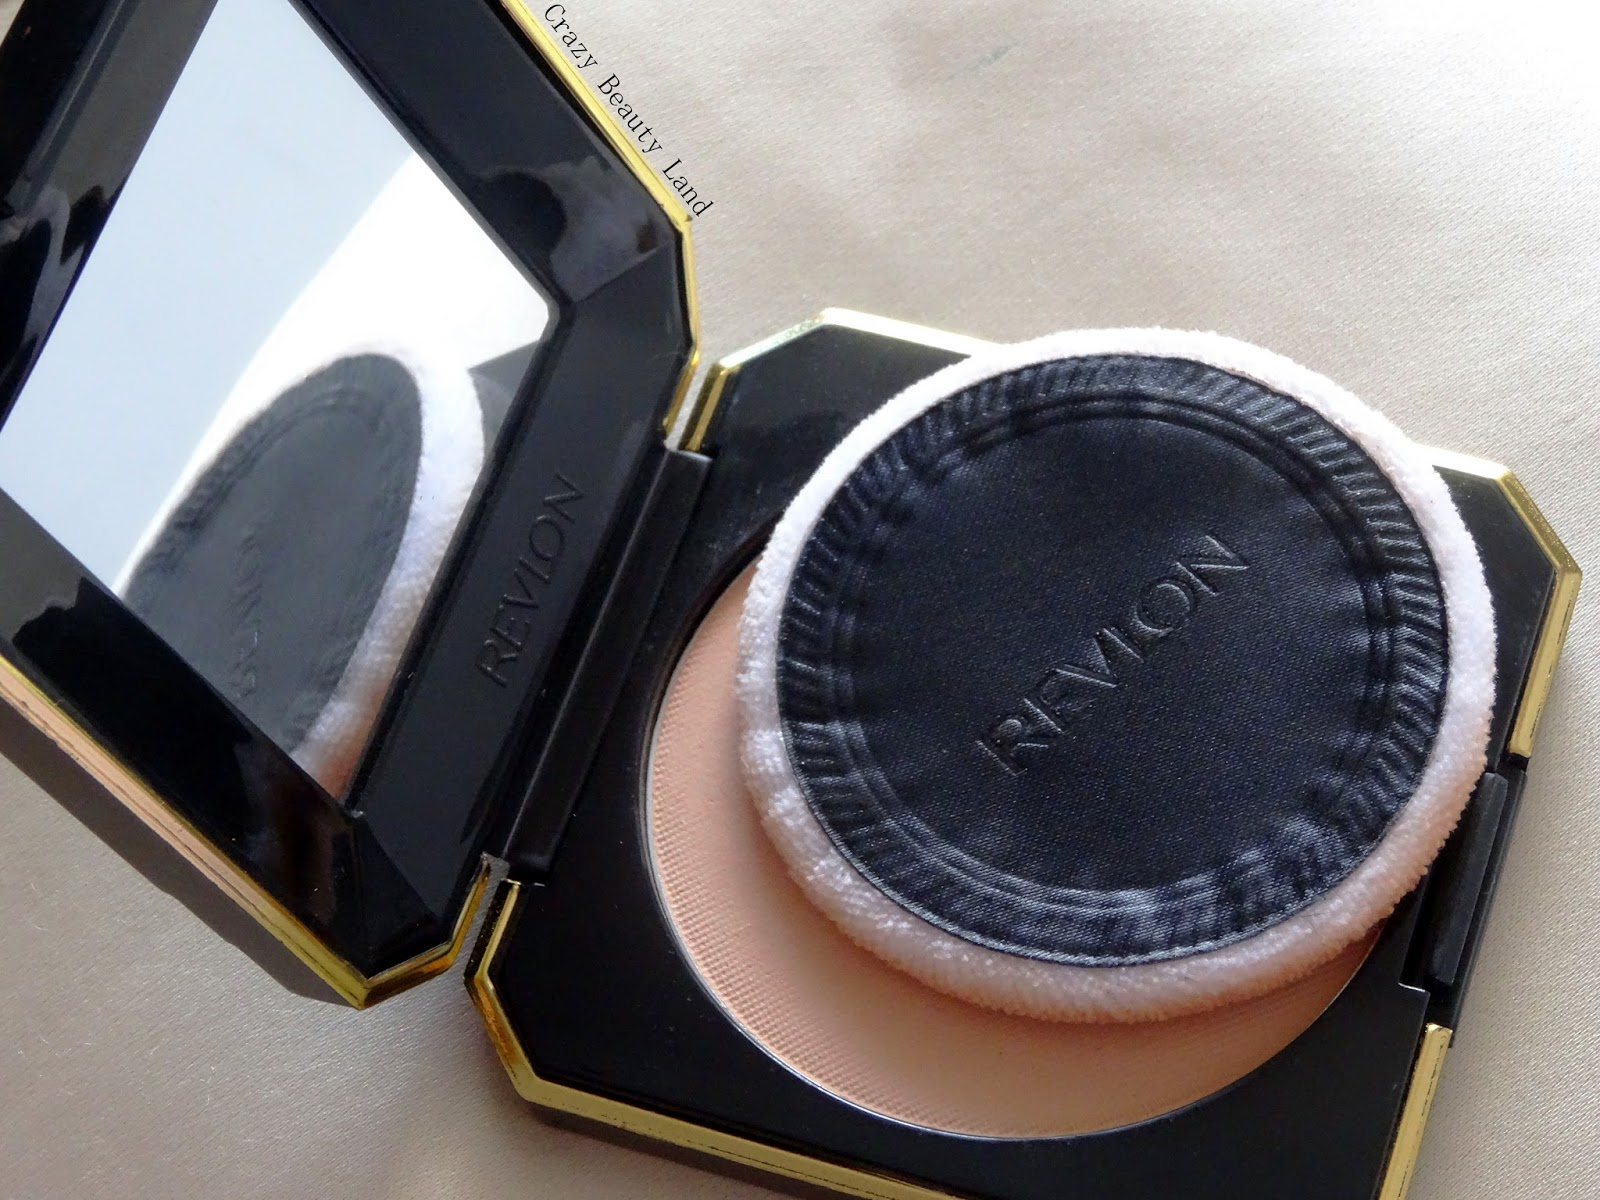 Revlon Touch and Glow Moisturizing Powder Compact in Ivory Matte